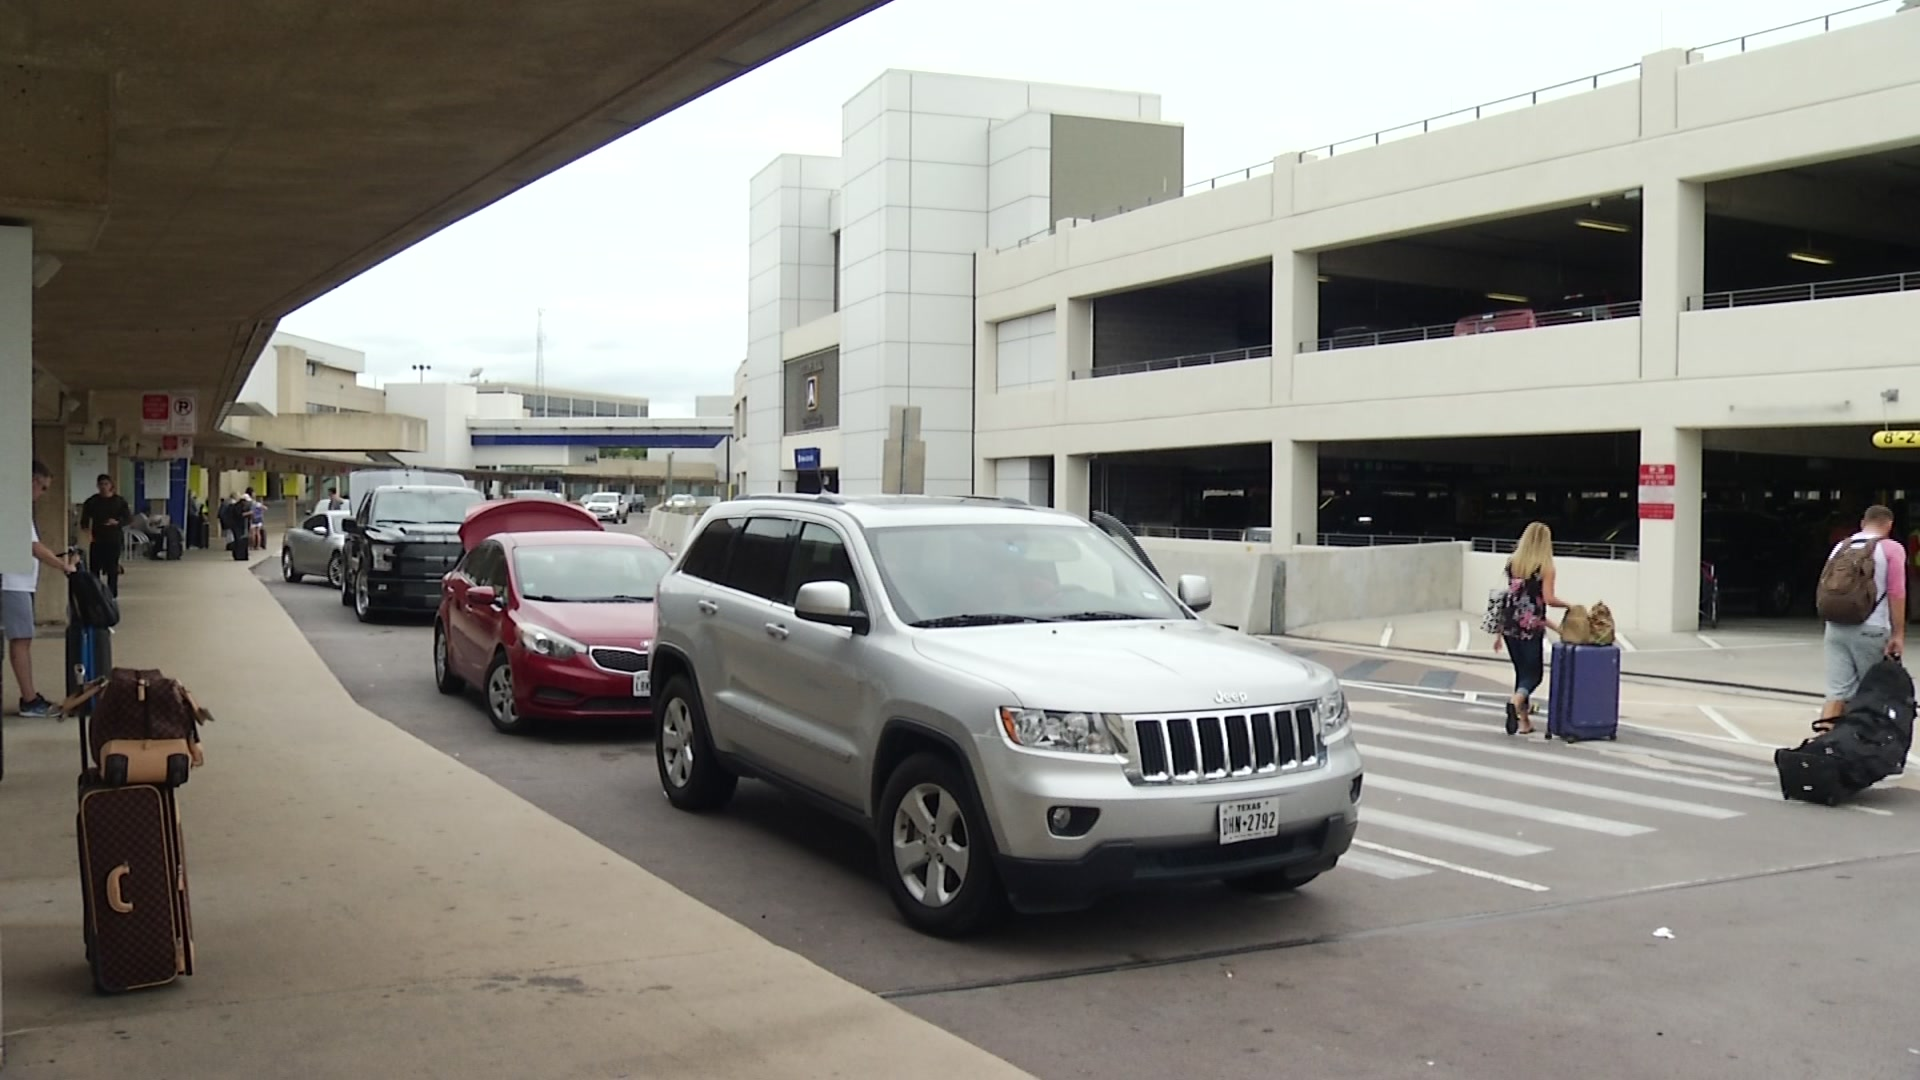 DFW Airport Offers Prepaid $8 Parking in 12-Day Sale